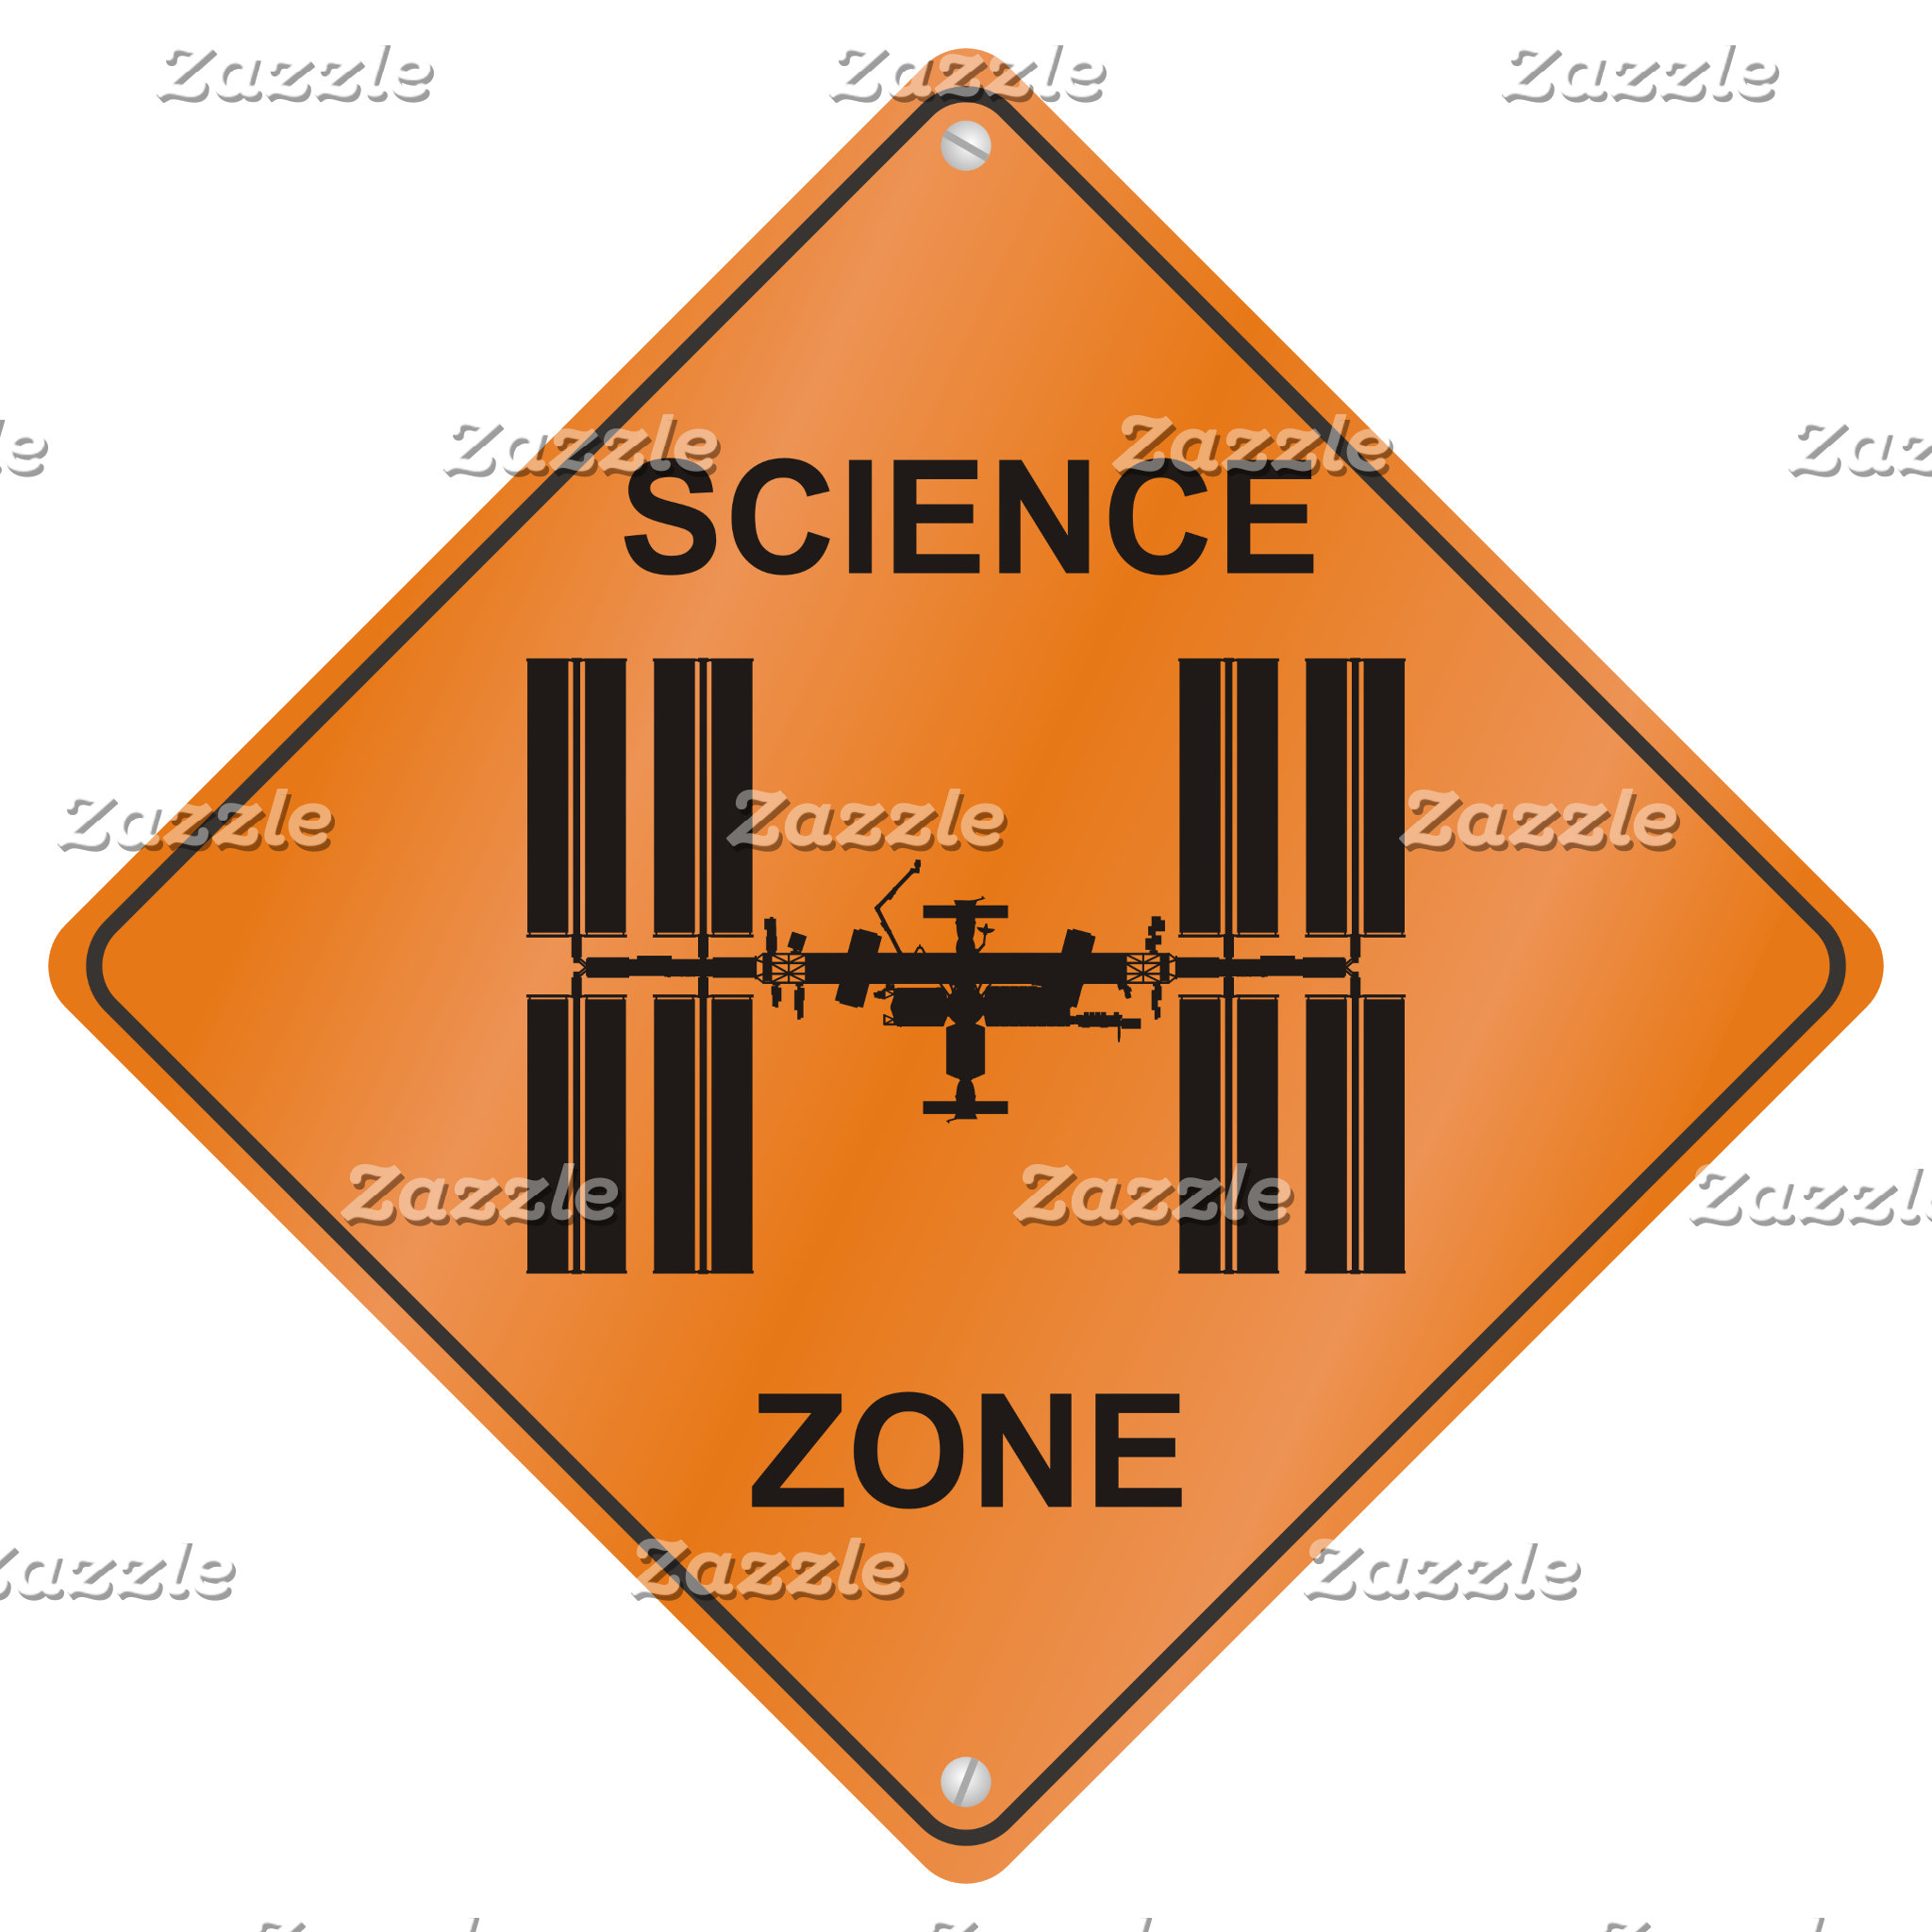 ISS / Science Zone